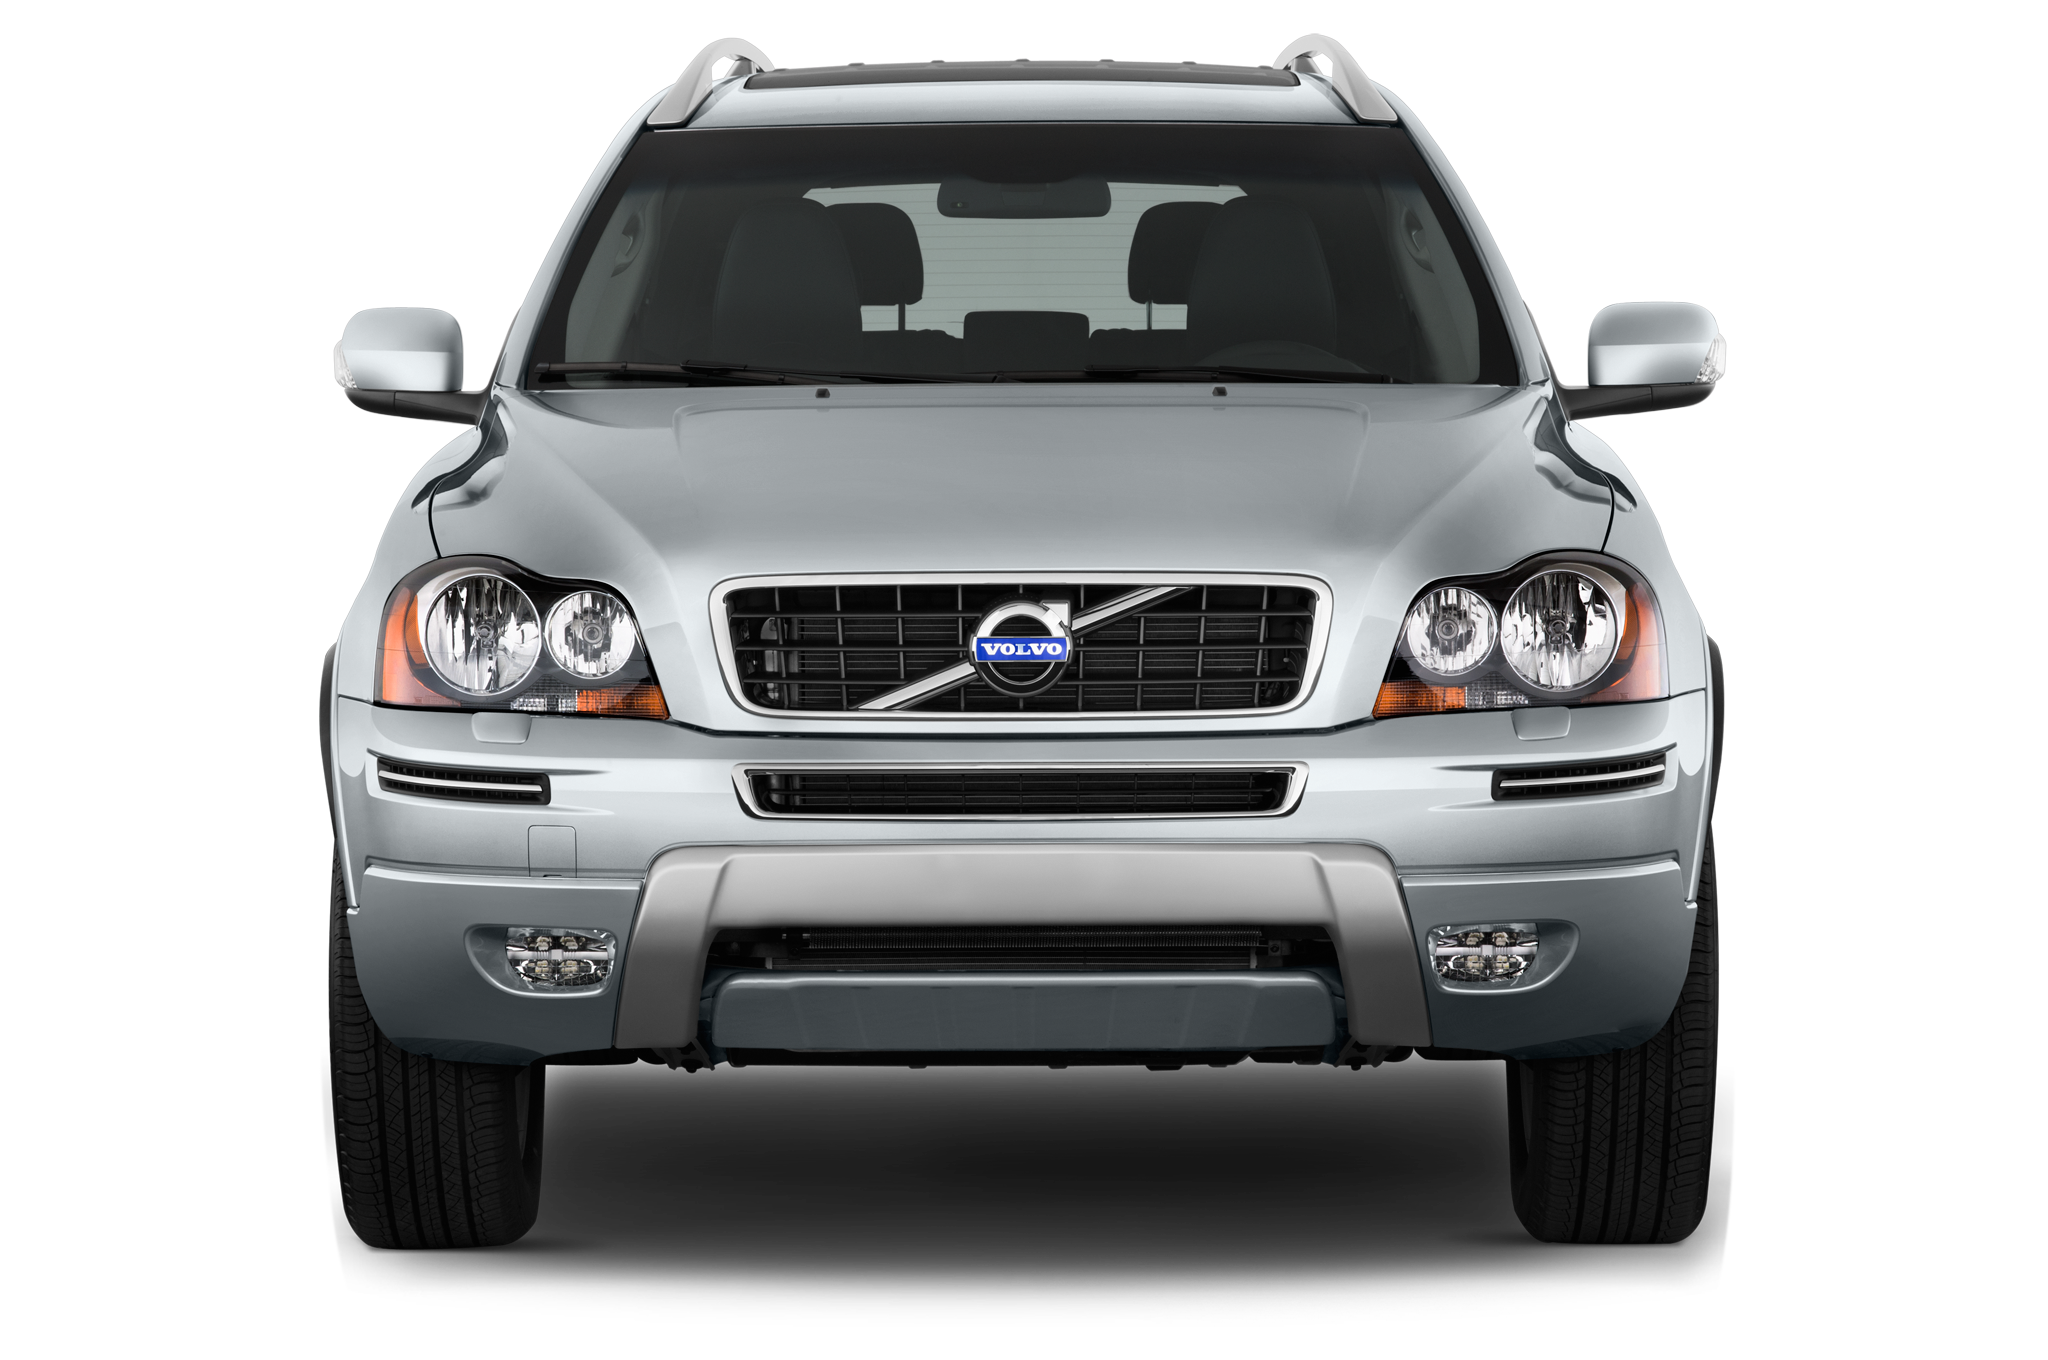 order on all open twin engine volvo released spills new pricing details prices hybrid suv plug in books